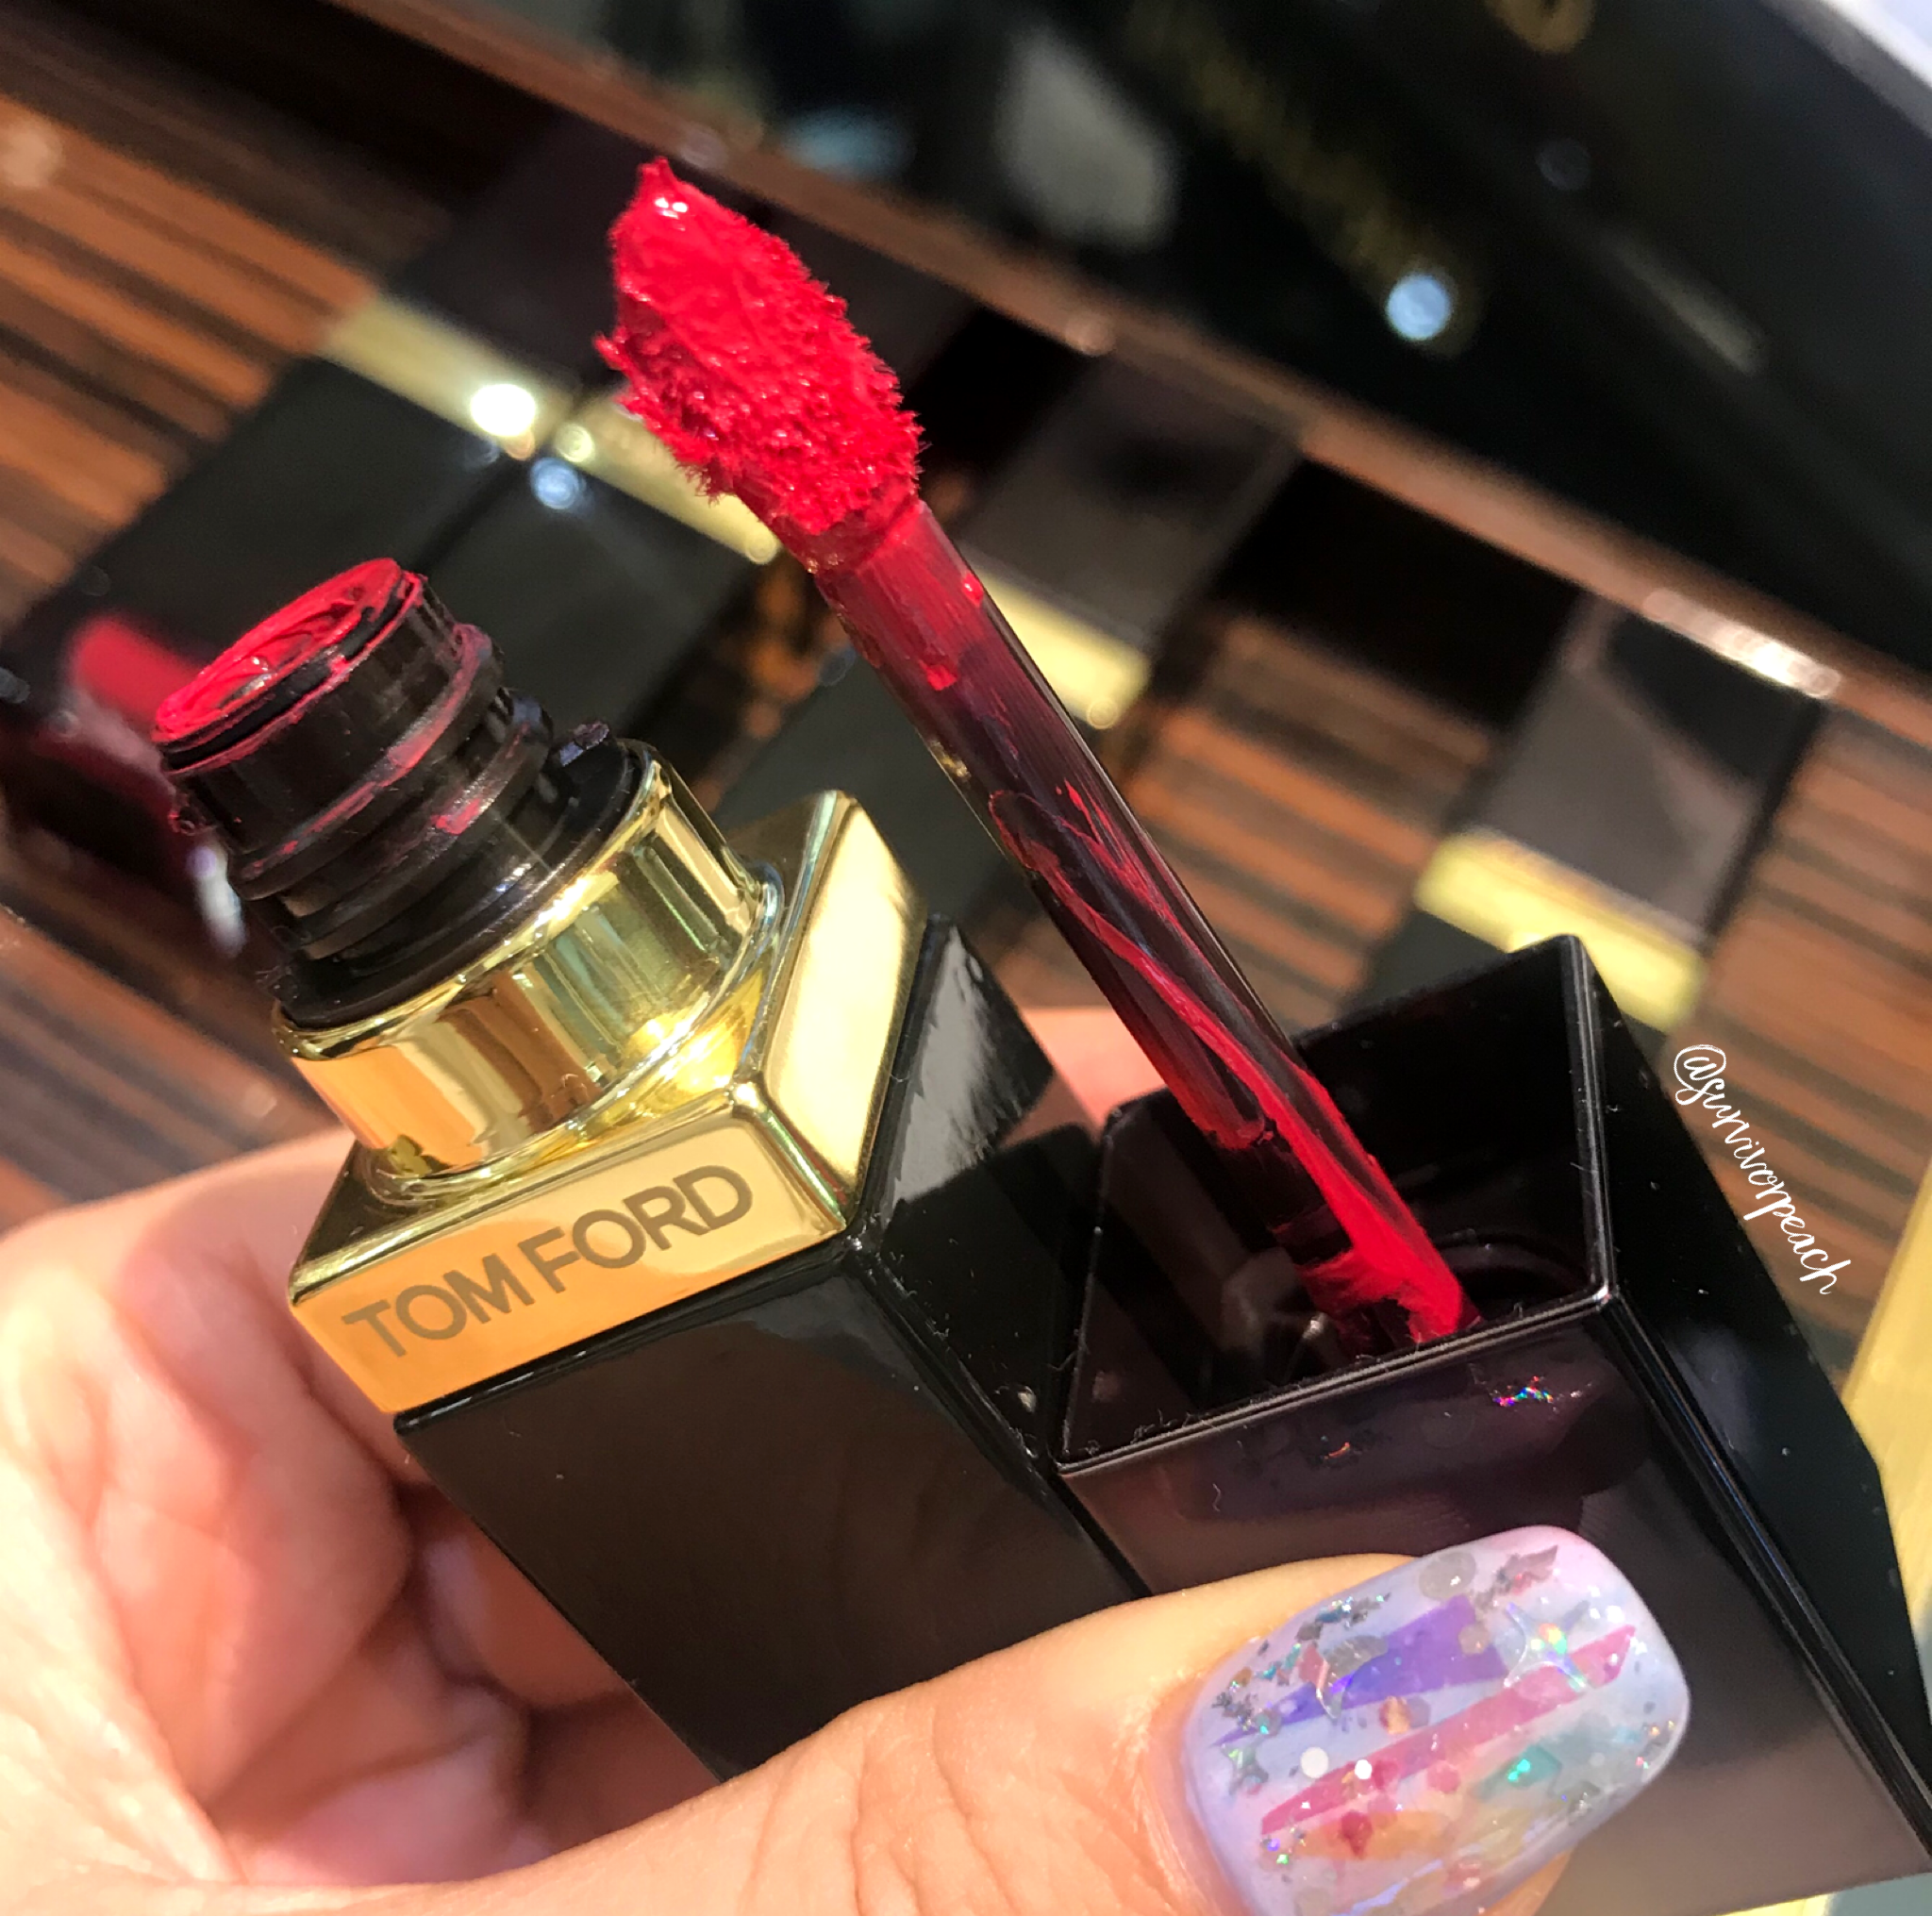 Tomford Lip Lacquer Luxe Matte in shade 09 Amaranth